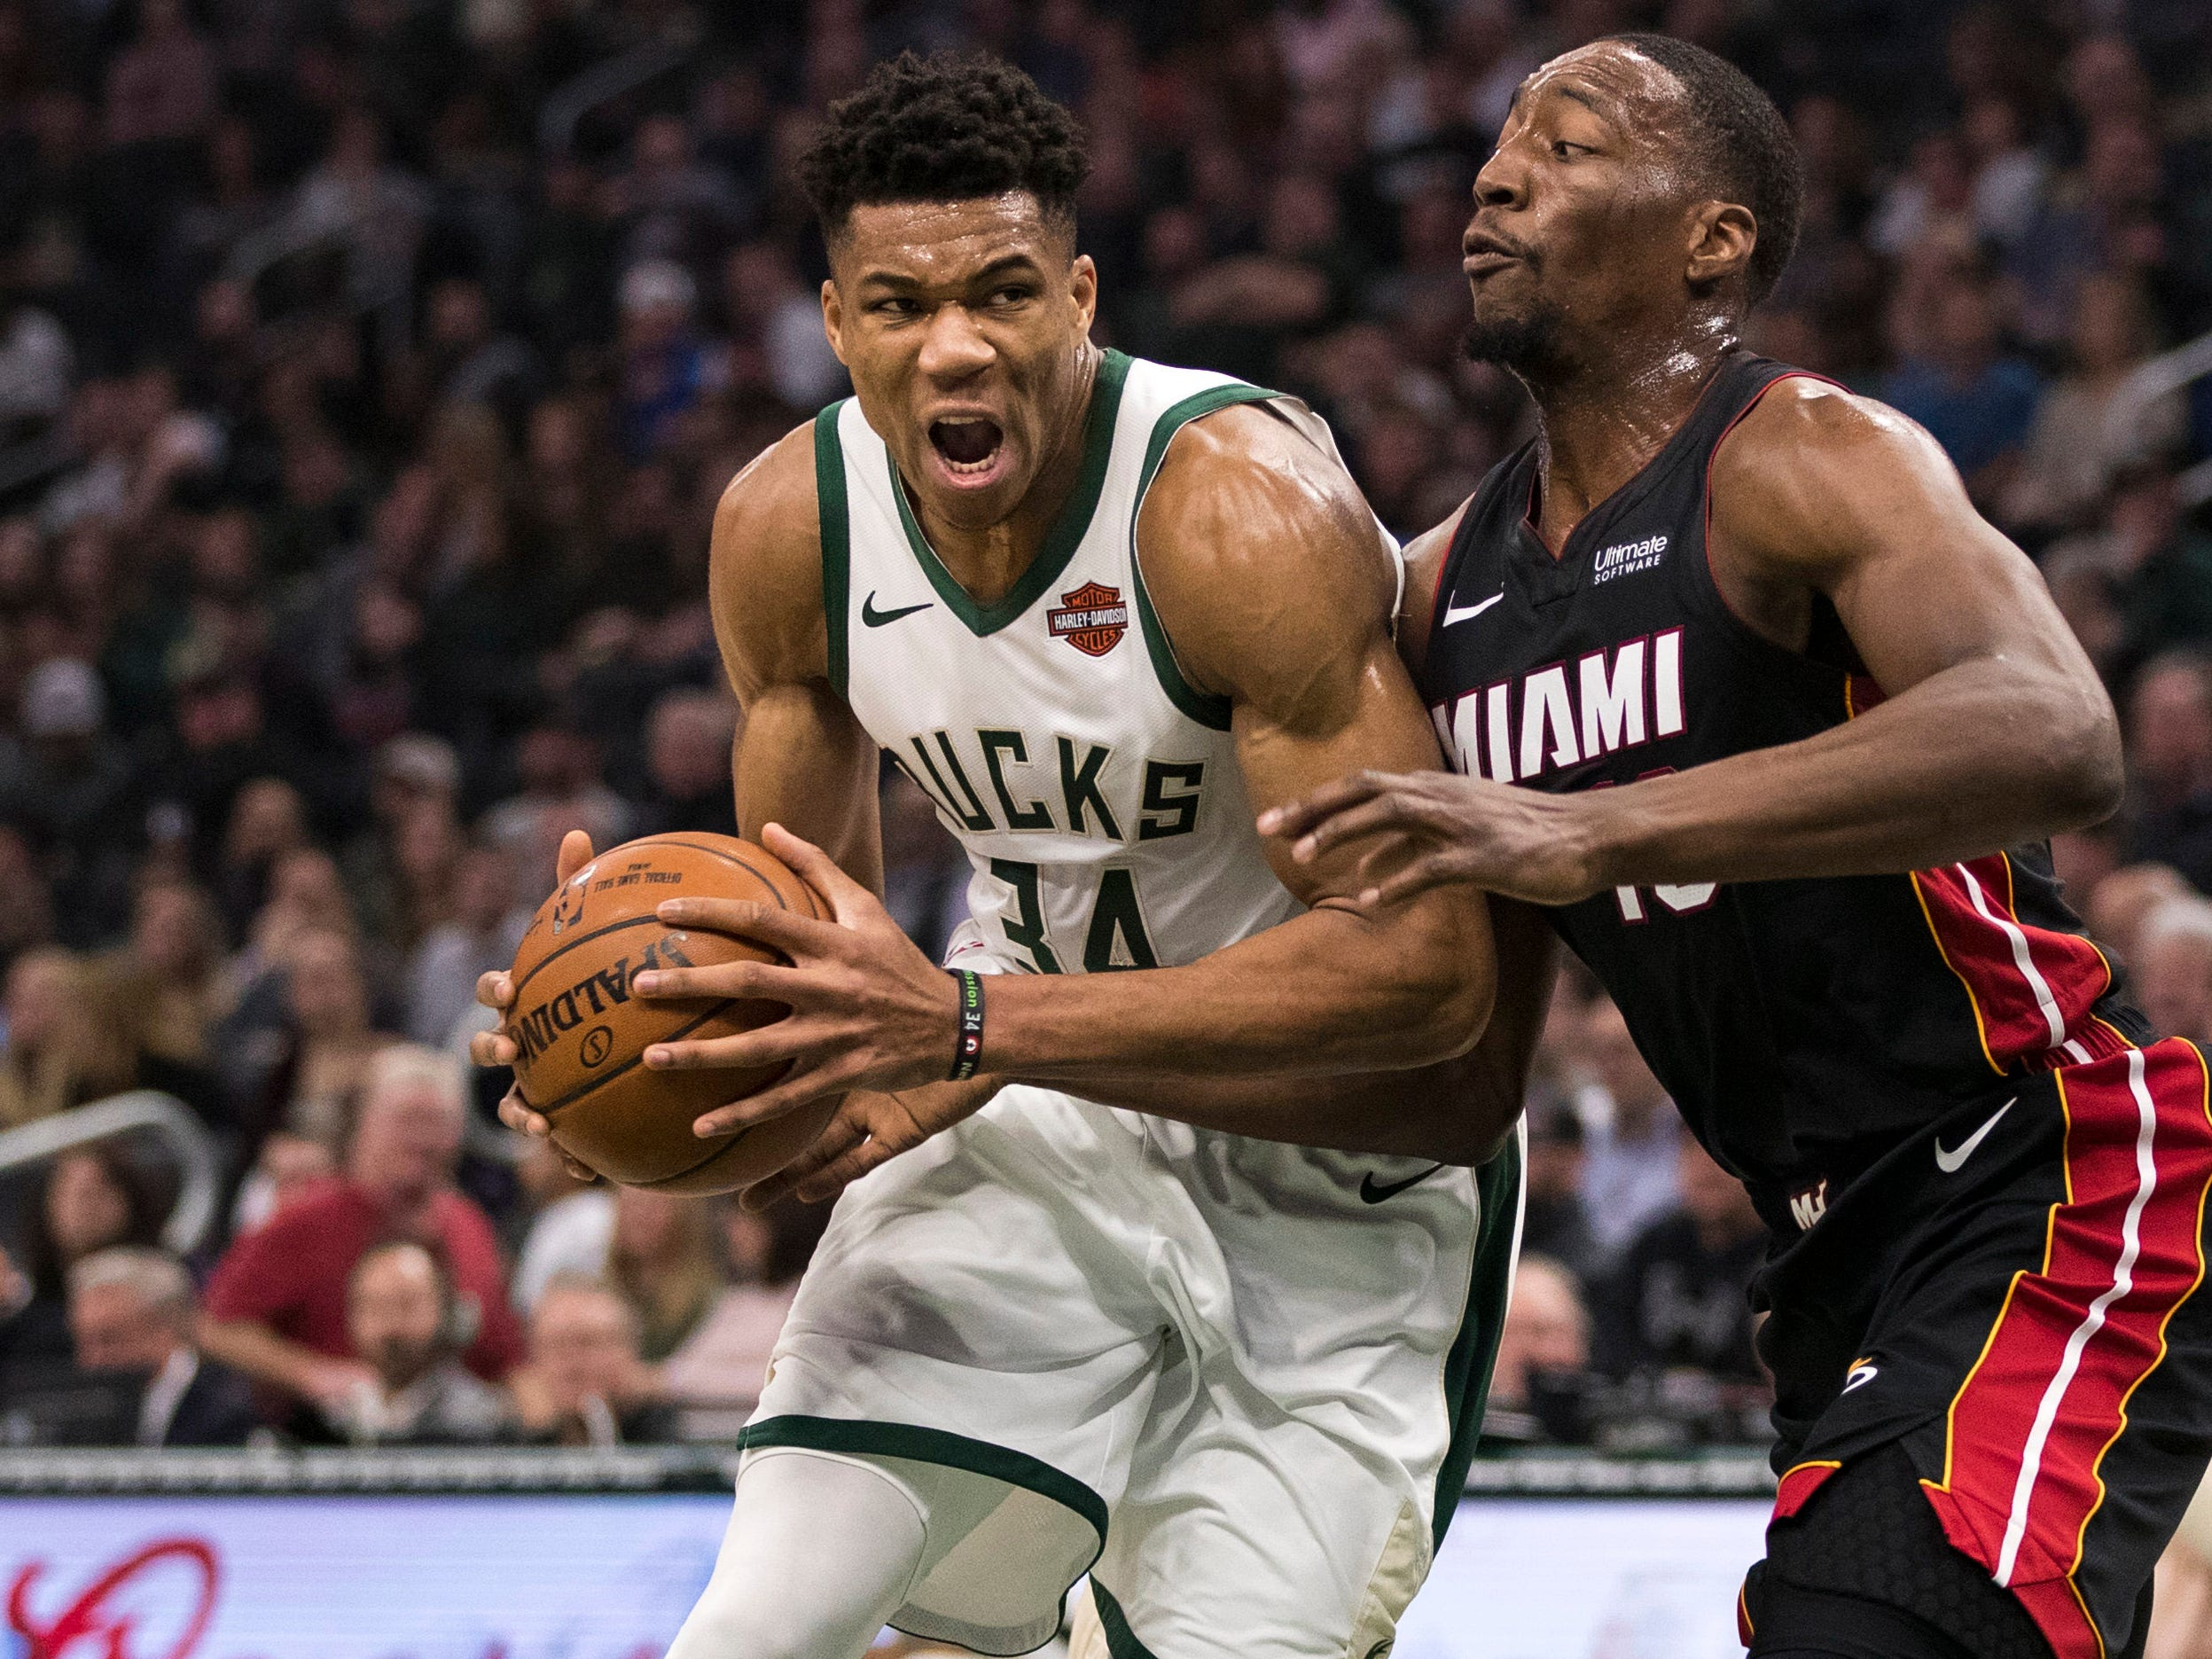 54. Giannis Antetokounmpo, Bucks (Jan. 15): 12 points, 10 assists, 10 rebounds in 124-86 win over Heat (fourth of season).